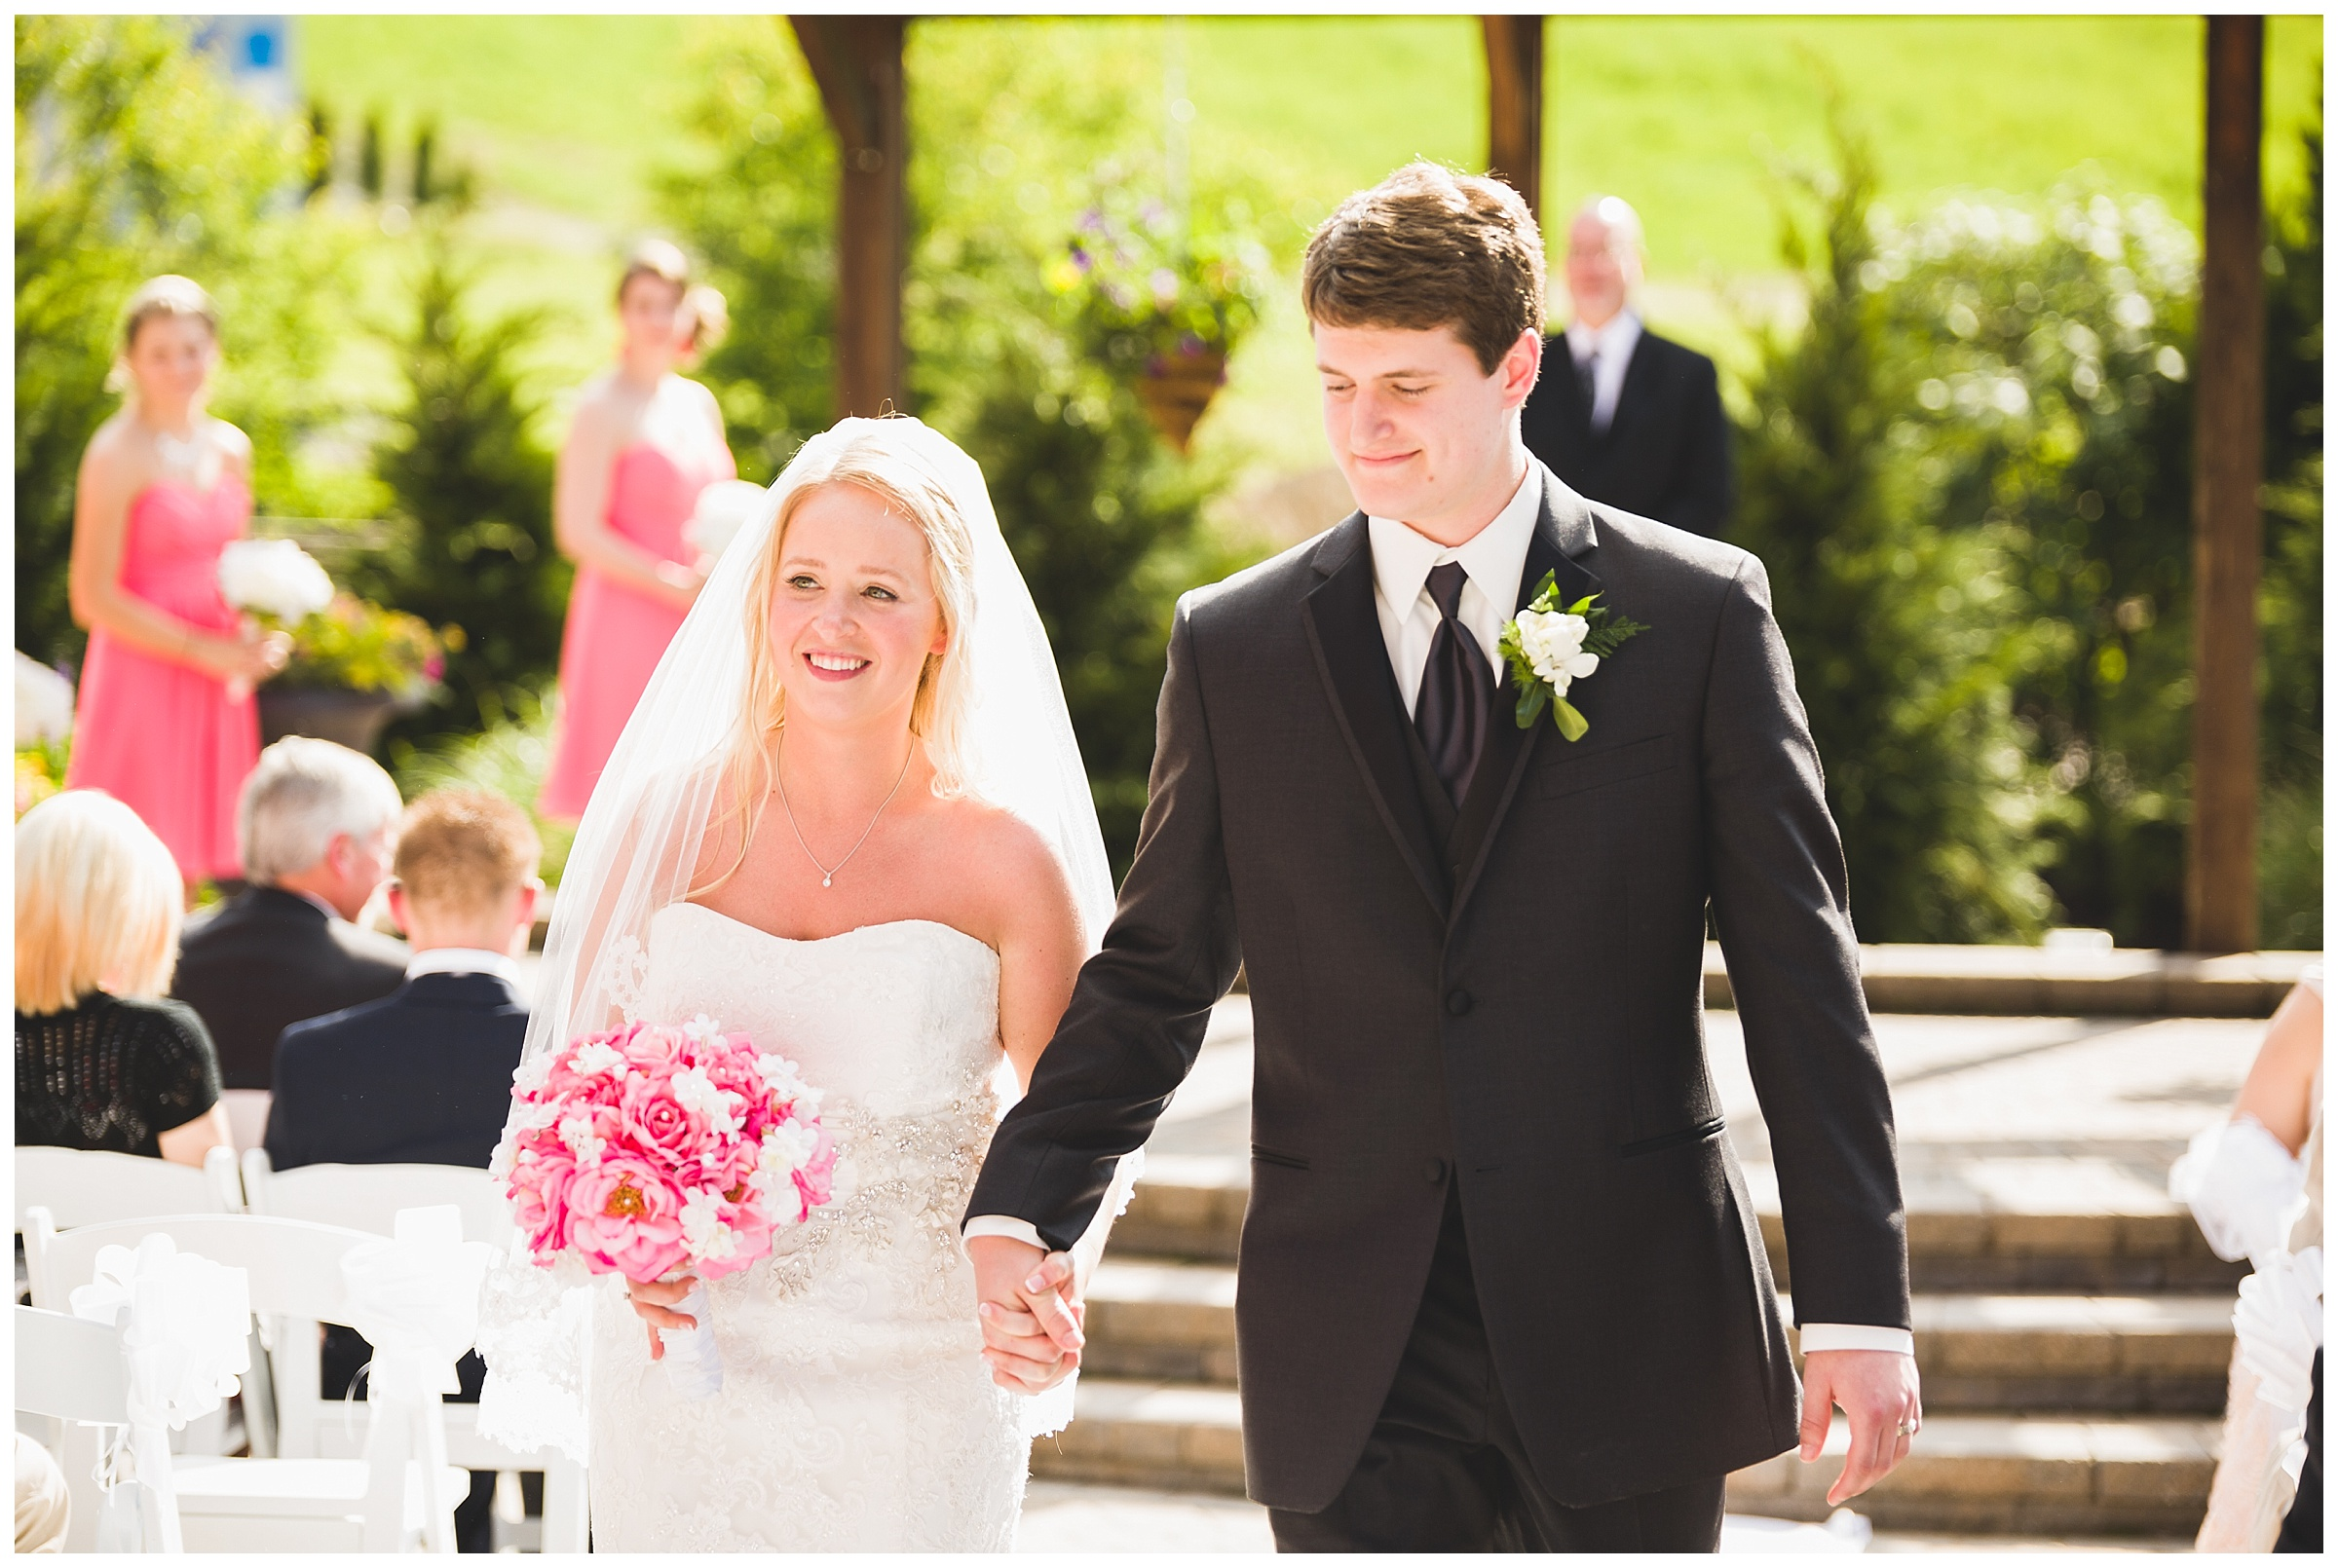 0045_Kelly and Josh's Wedding, Bear Creek Resort, PA_0045